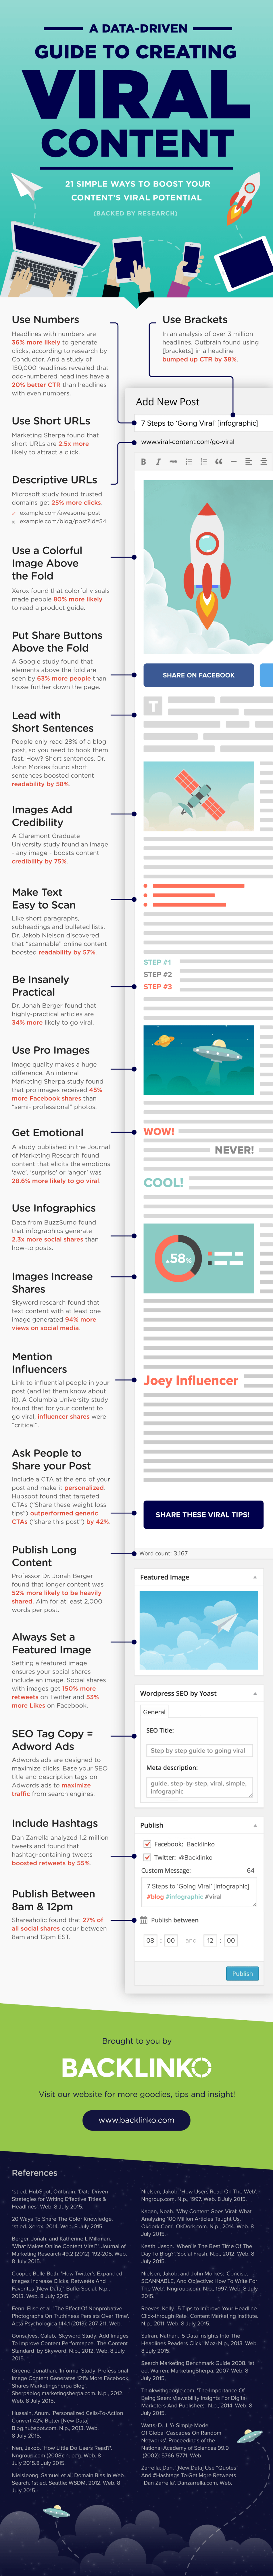 Creating Viral Content [Infographic]